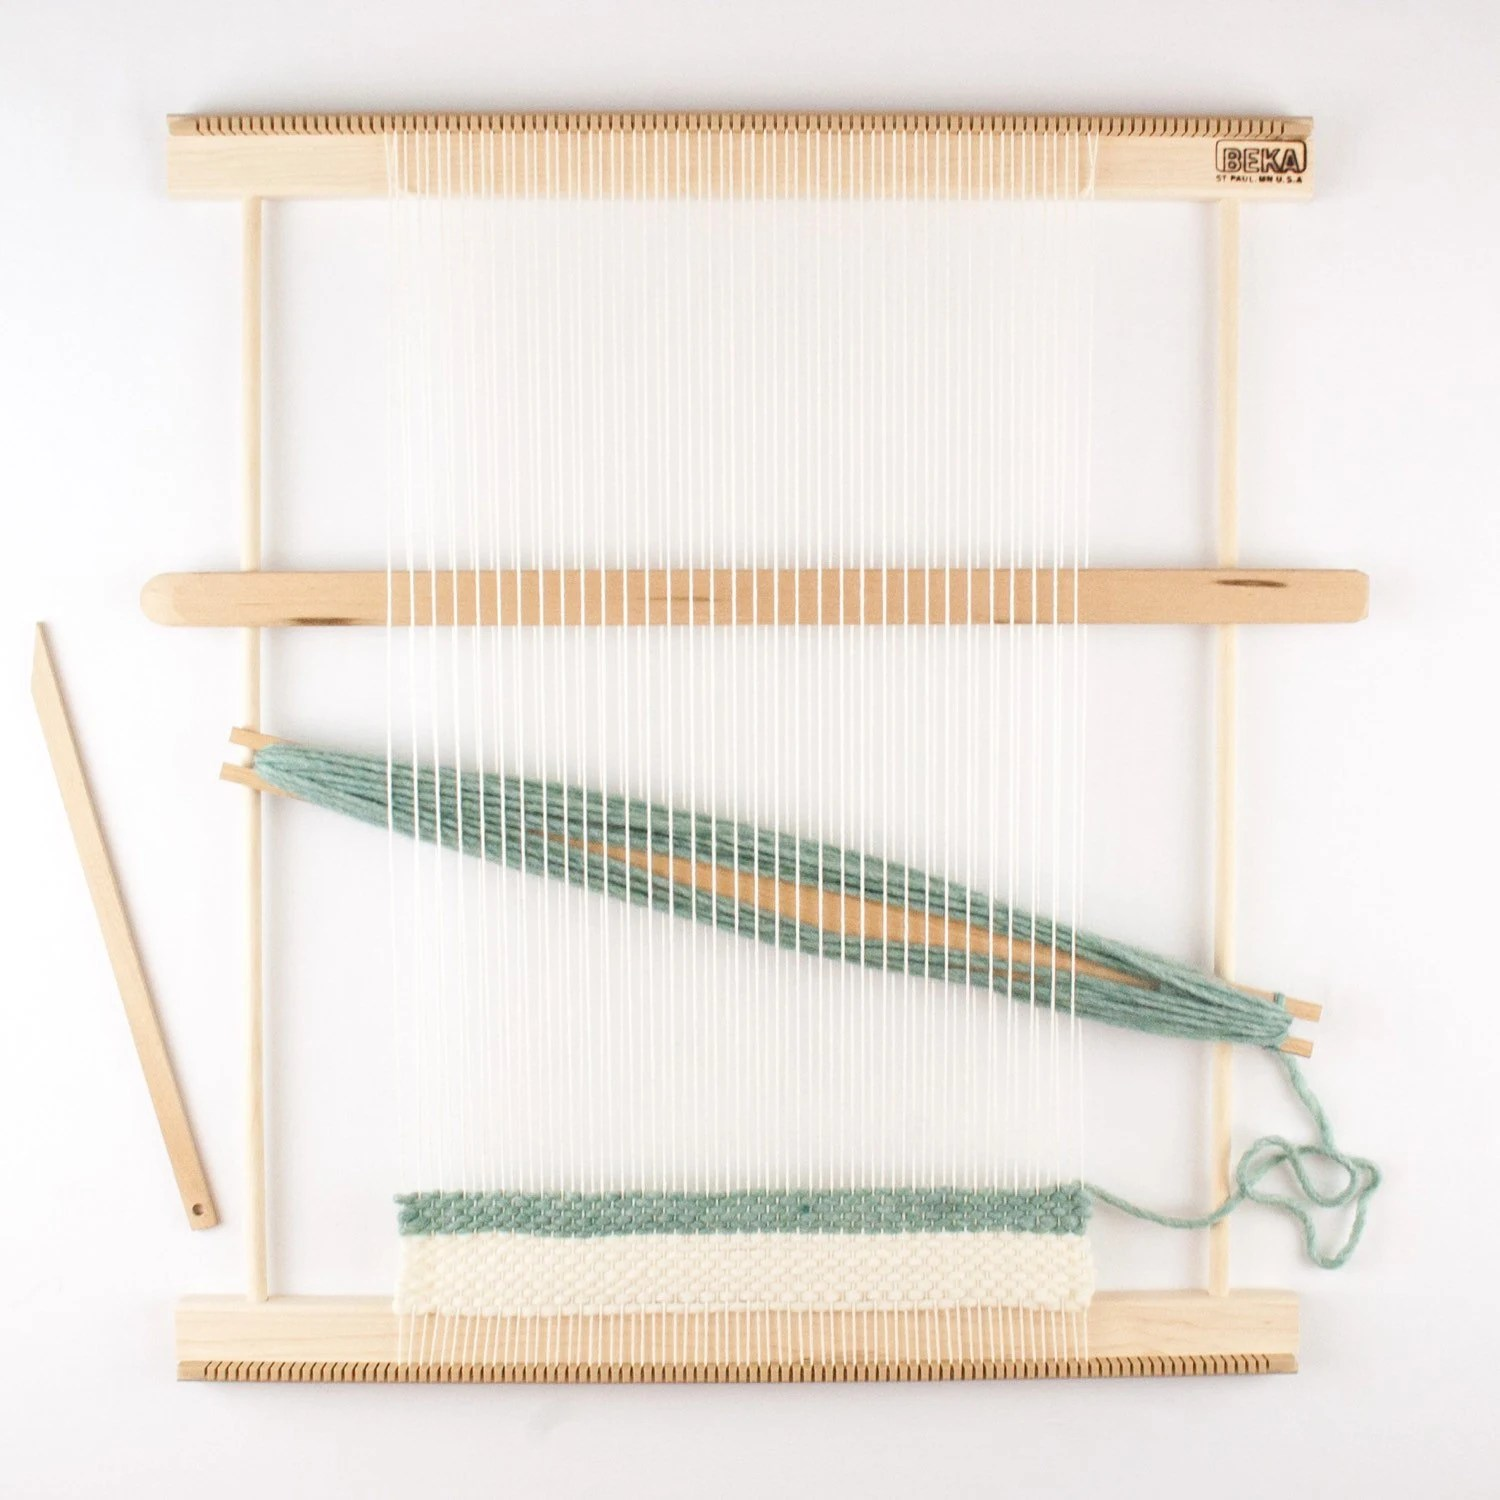 Make Heddle Loom Own Your